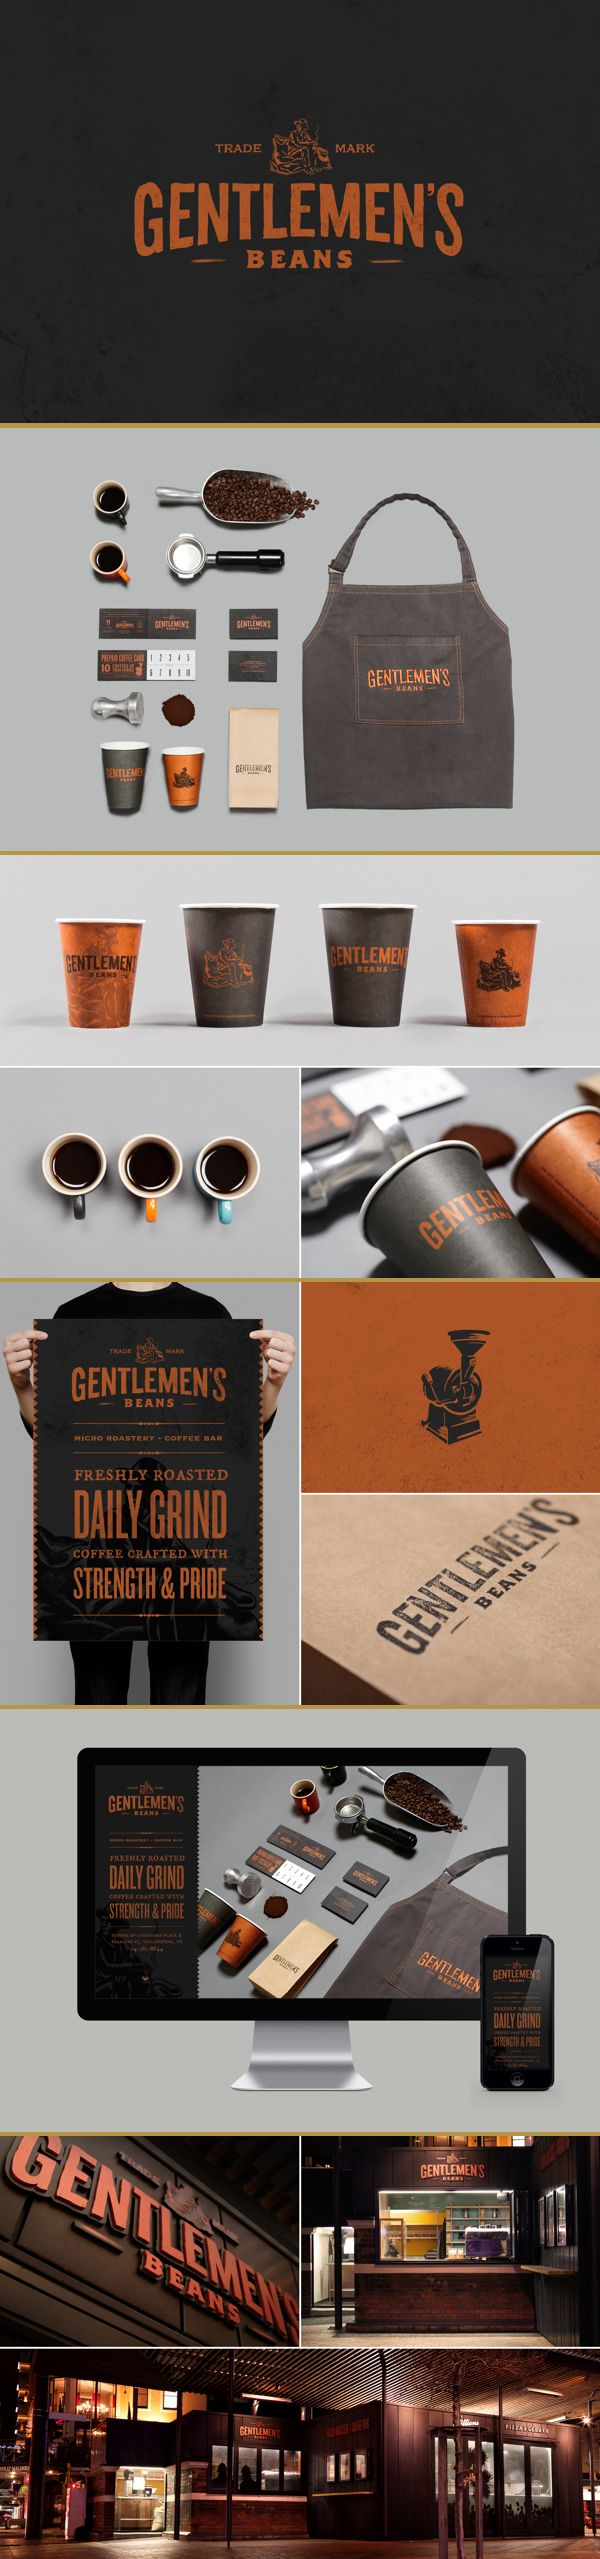 gentlemen's beans coffee bar #2013 #toppins PD